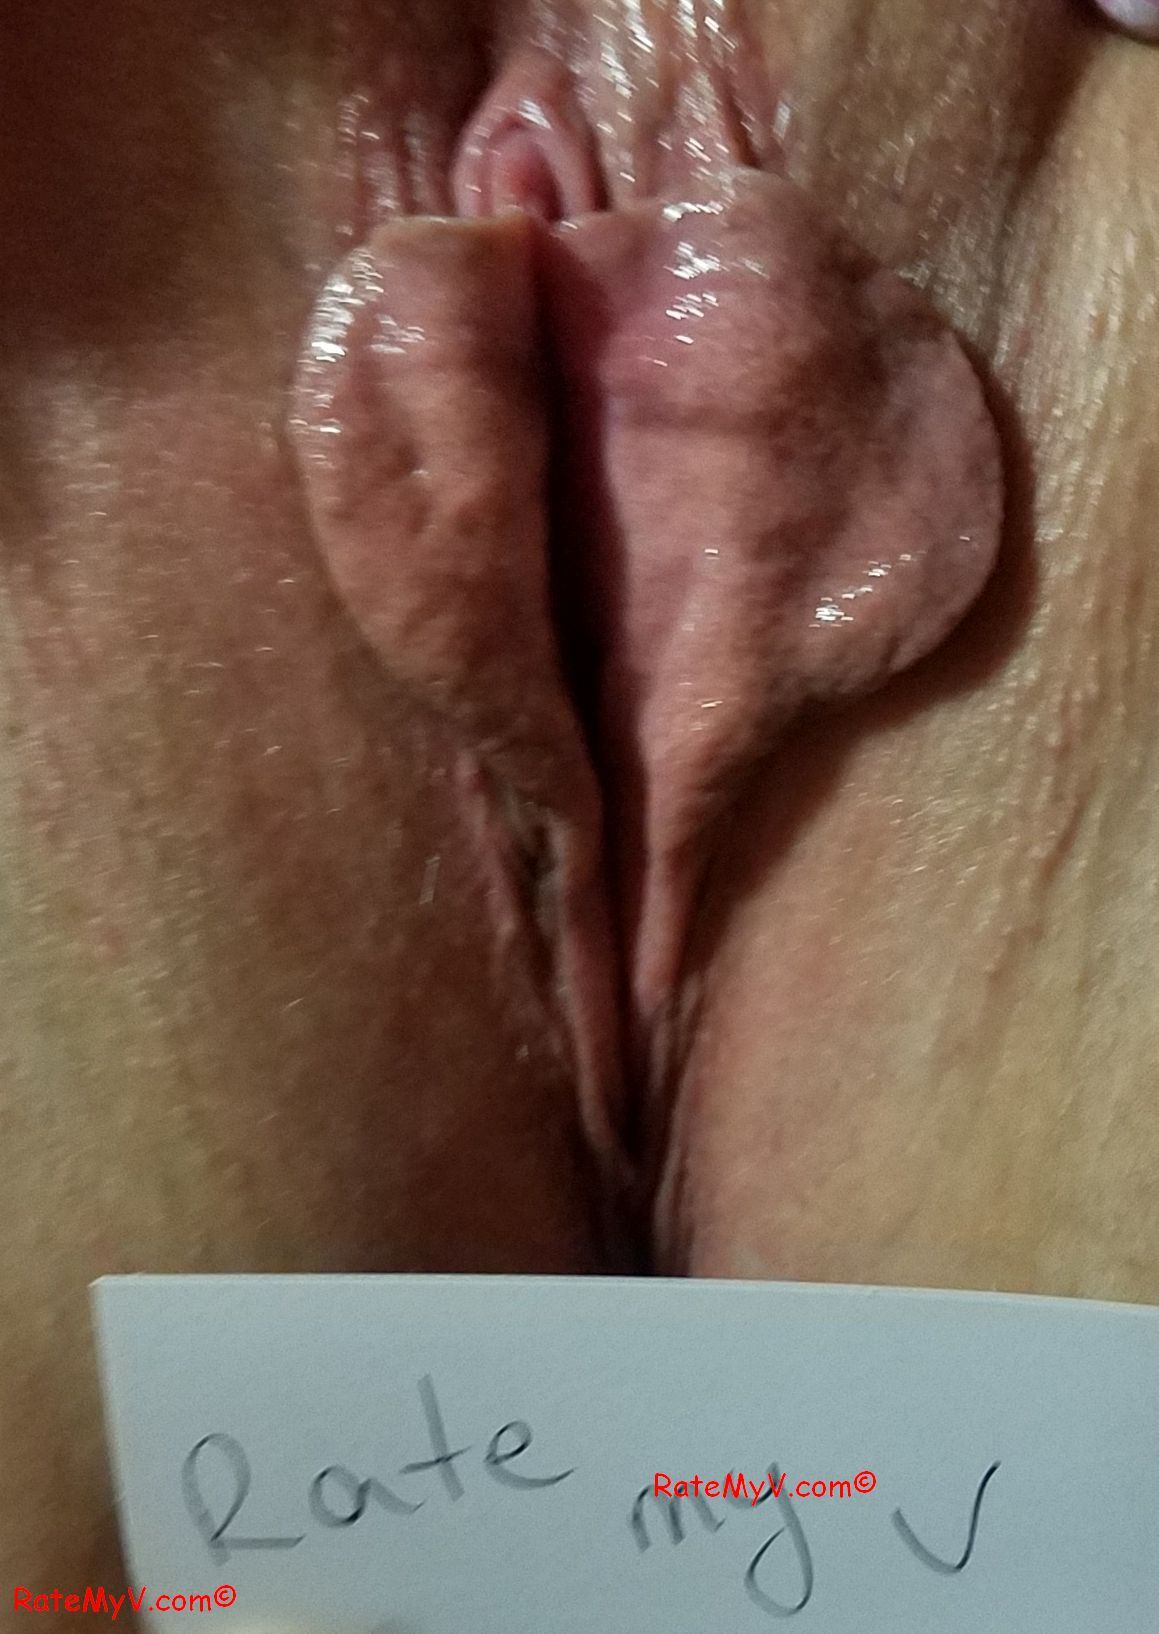 Rate My Pussylips